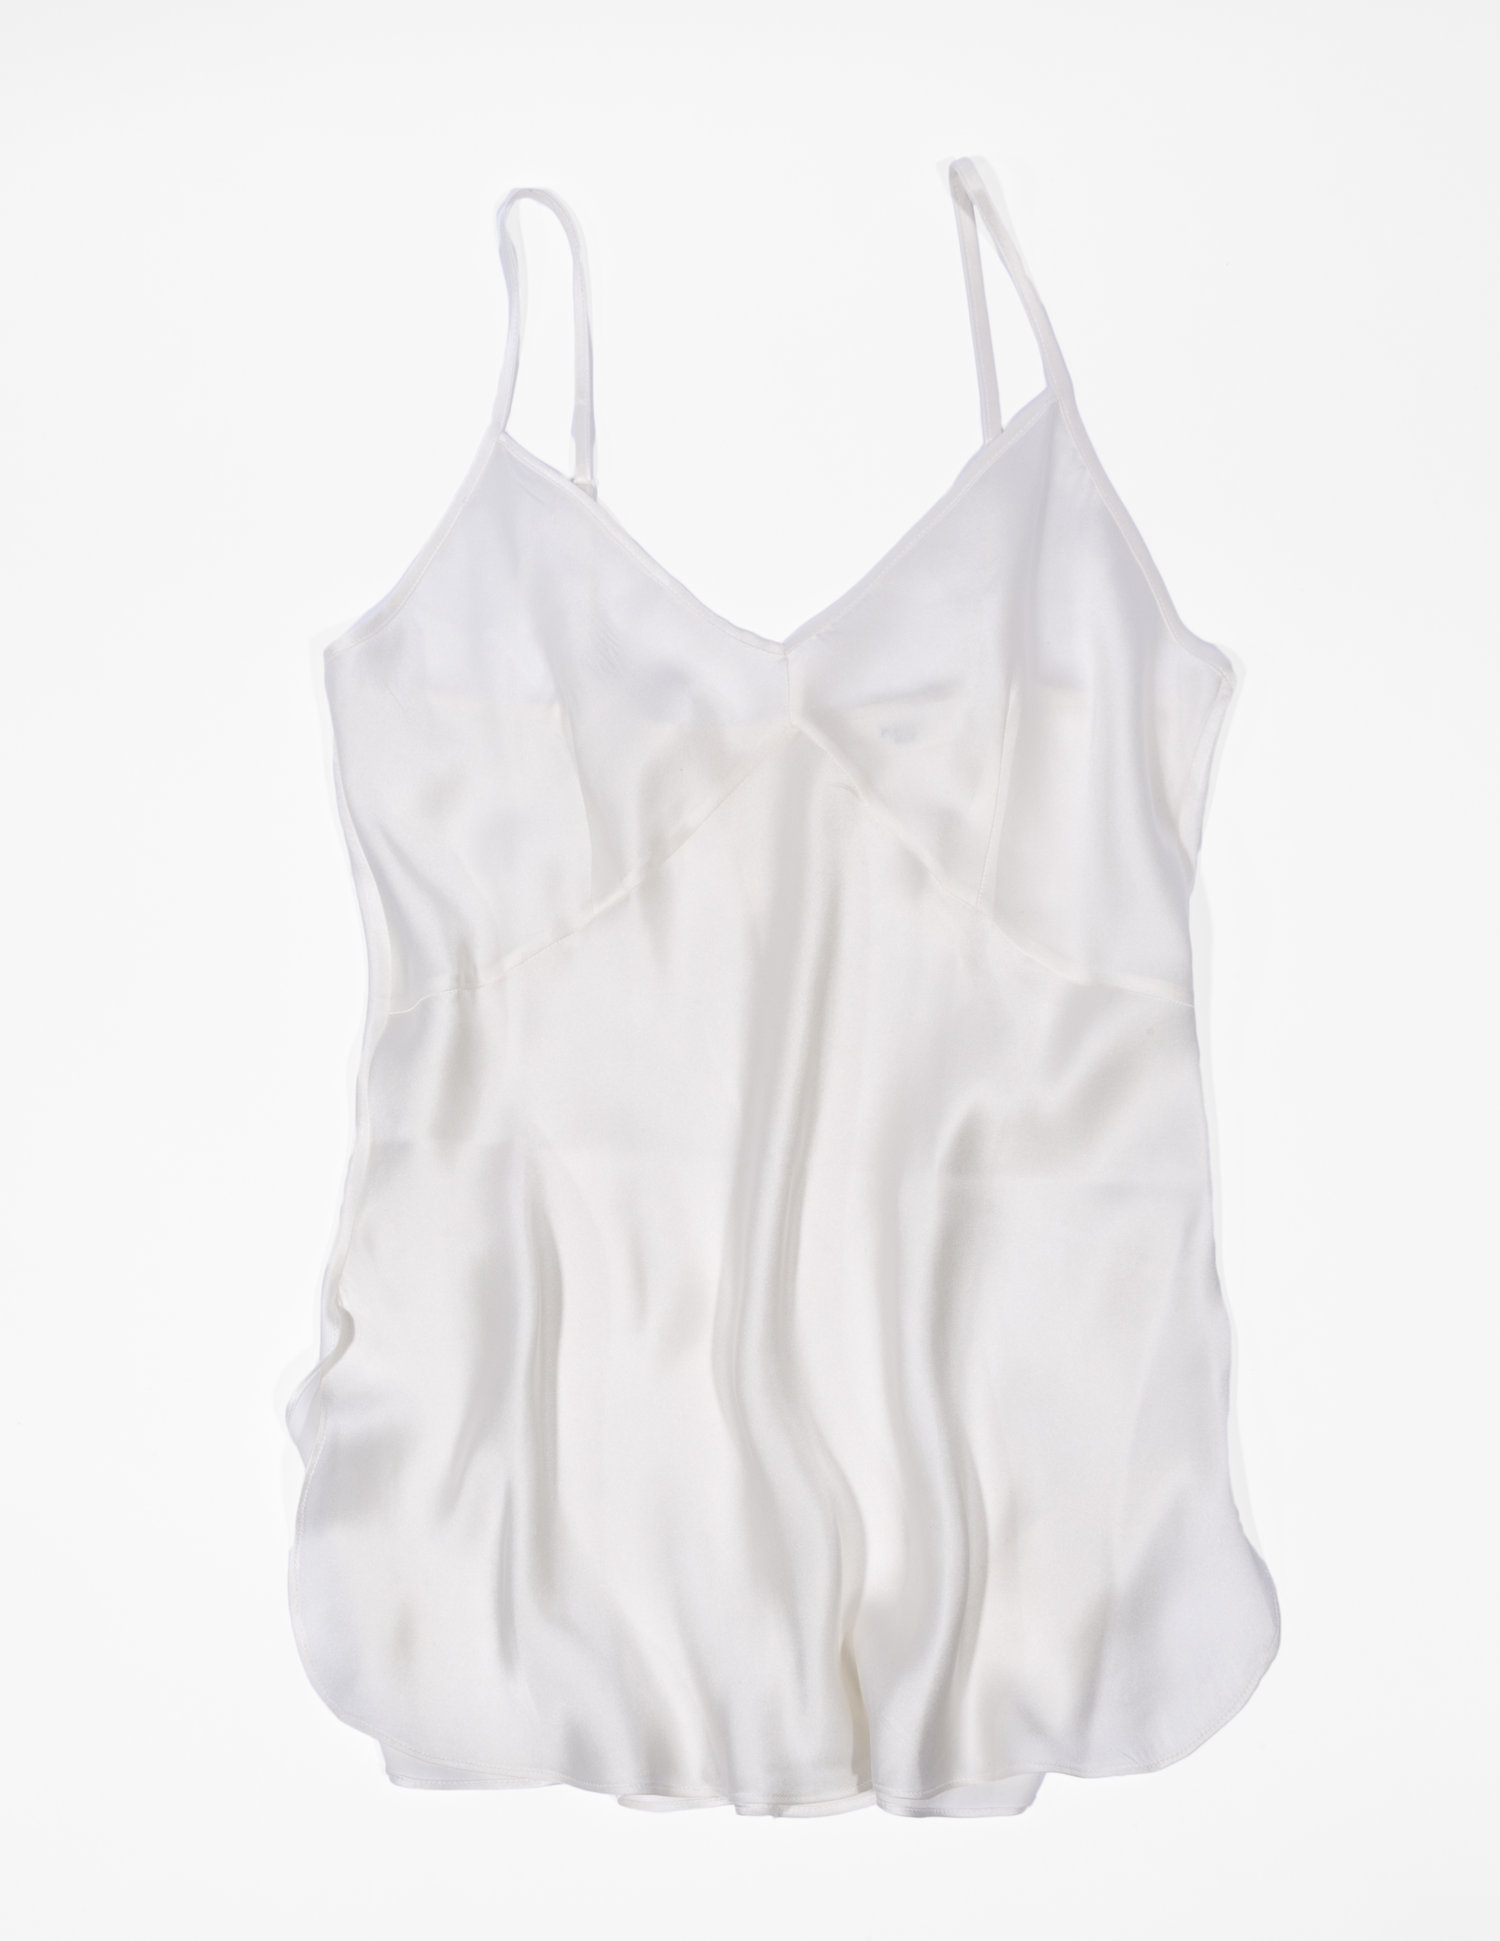 52ba7d1401ca4 KRUSH Organic Silk Camisole in Raw White — KENT